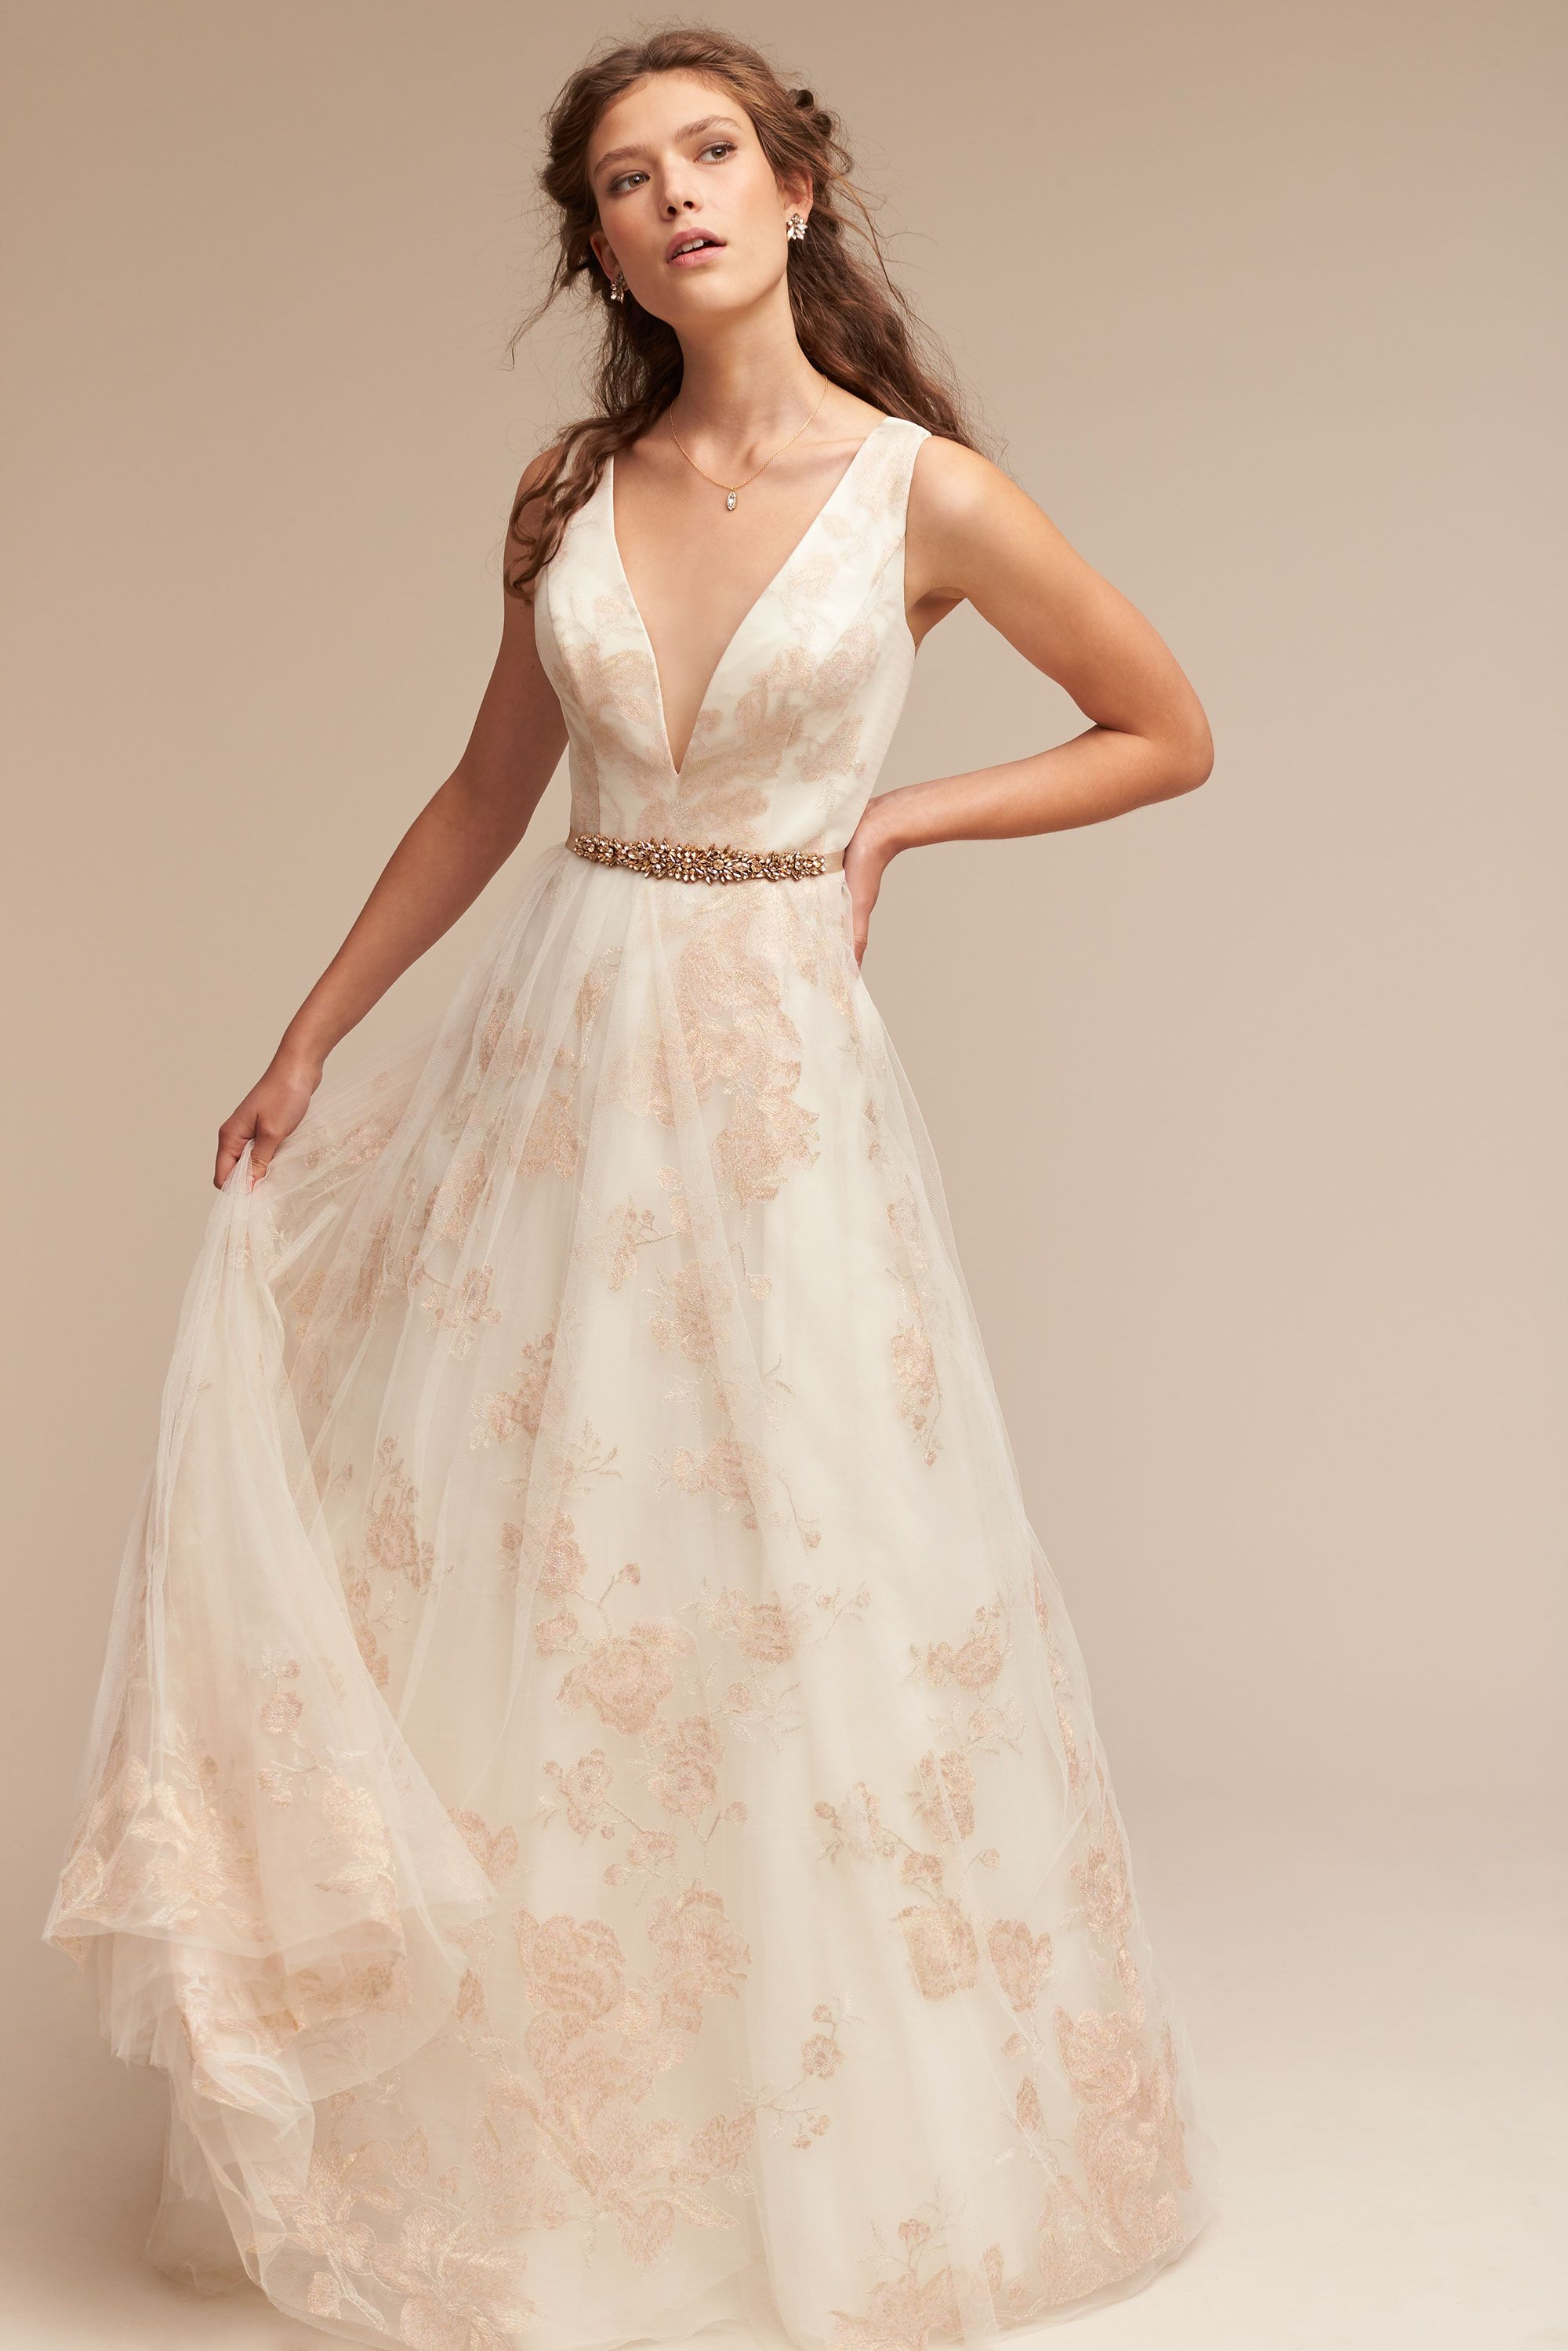 shop sale discounted wedding dresses Lily Gown